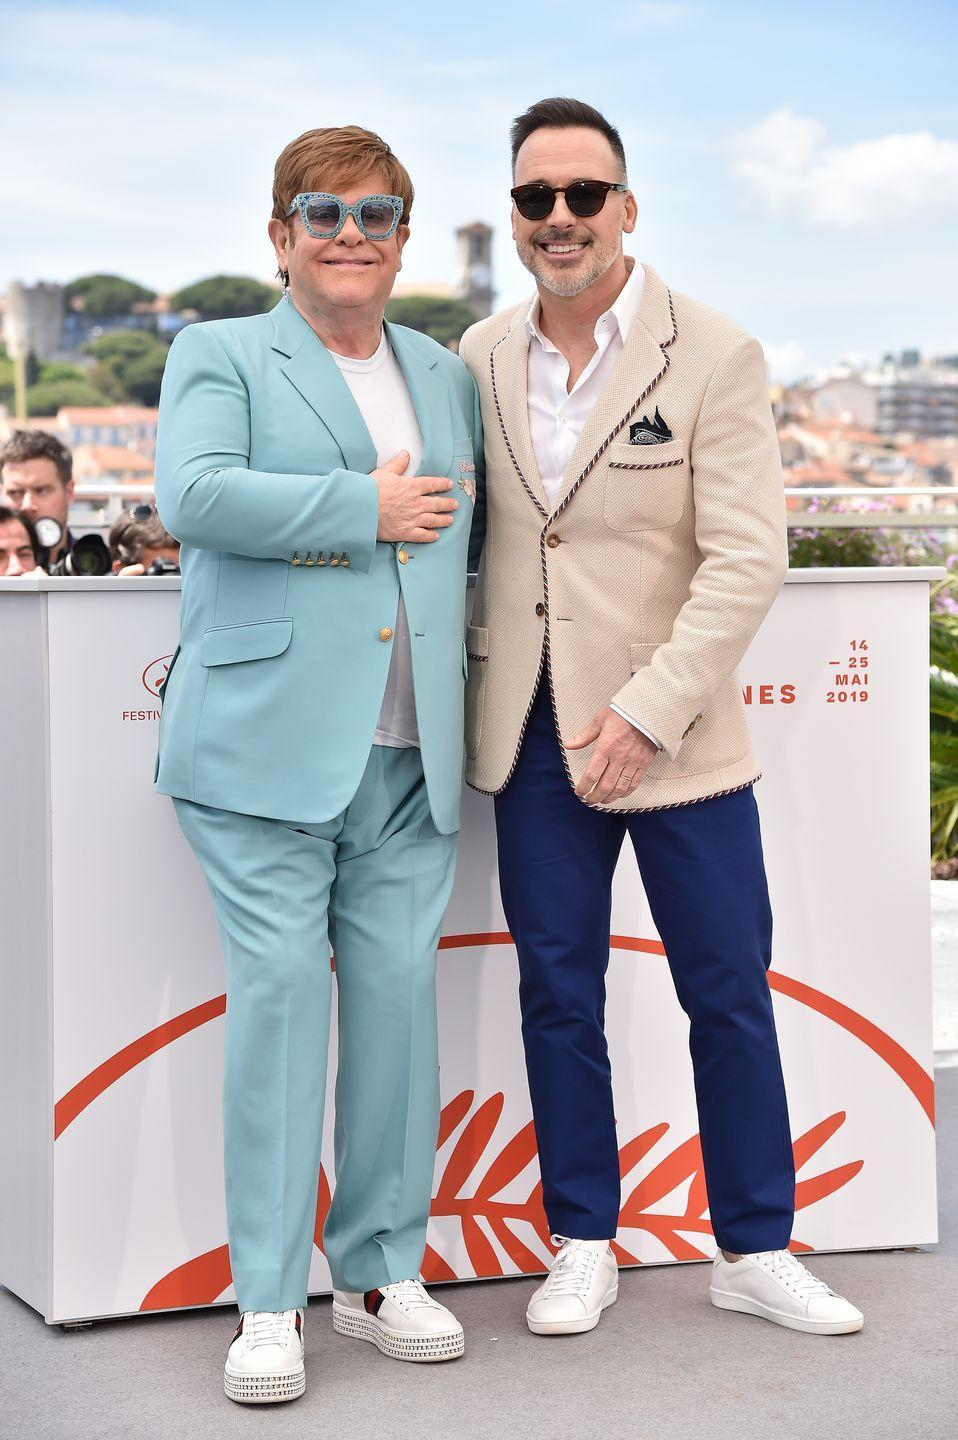 "<p>When you're Elton John, you can get married at the same place Prince Charles and Camilla Parker Bowles did, and no one bats an eyelash! Elton John and David Furnish's $1.5 million wedding took place at Windsor Guildhall, and <a href=""https://www.livingly.com/The+Most+Expensive+Celebrity+Weddings/articles/tudaRNVkZMp/Elton+John+David+Furnish+2005#:~:text=You%20have%20a%20%243.5%20million%20wedding."" rel=""nofollow noopener"" target=""_blank"" data-ylk=""slk:over 600 guests attended"" class=""link rapid-noclick-resp"">over 600 guests attended</a>. </p>"